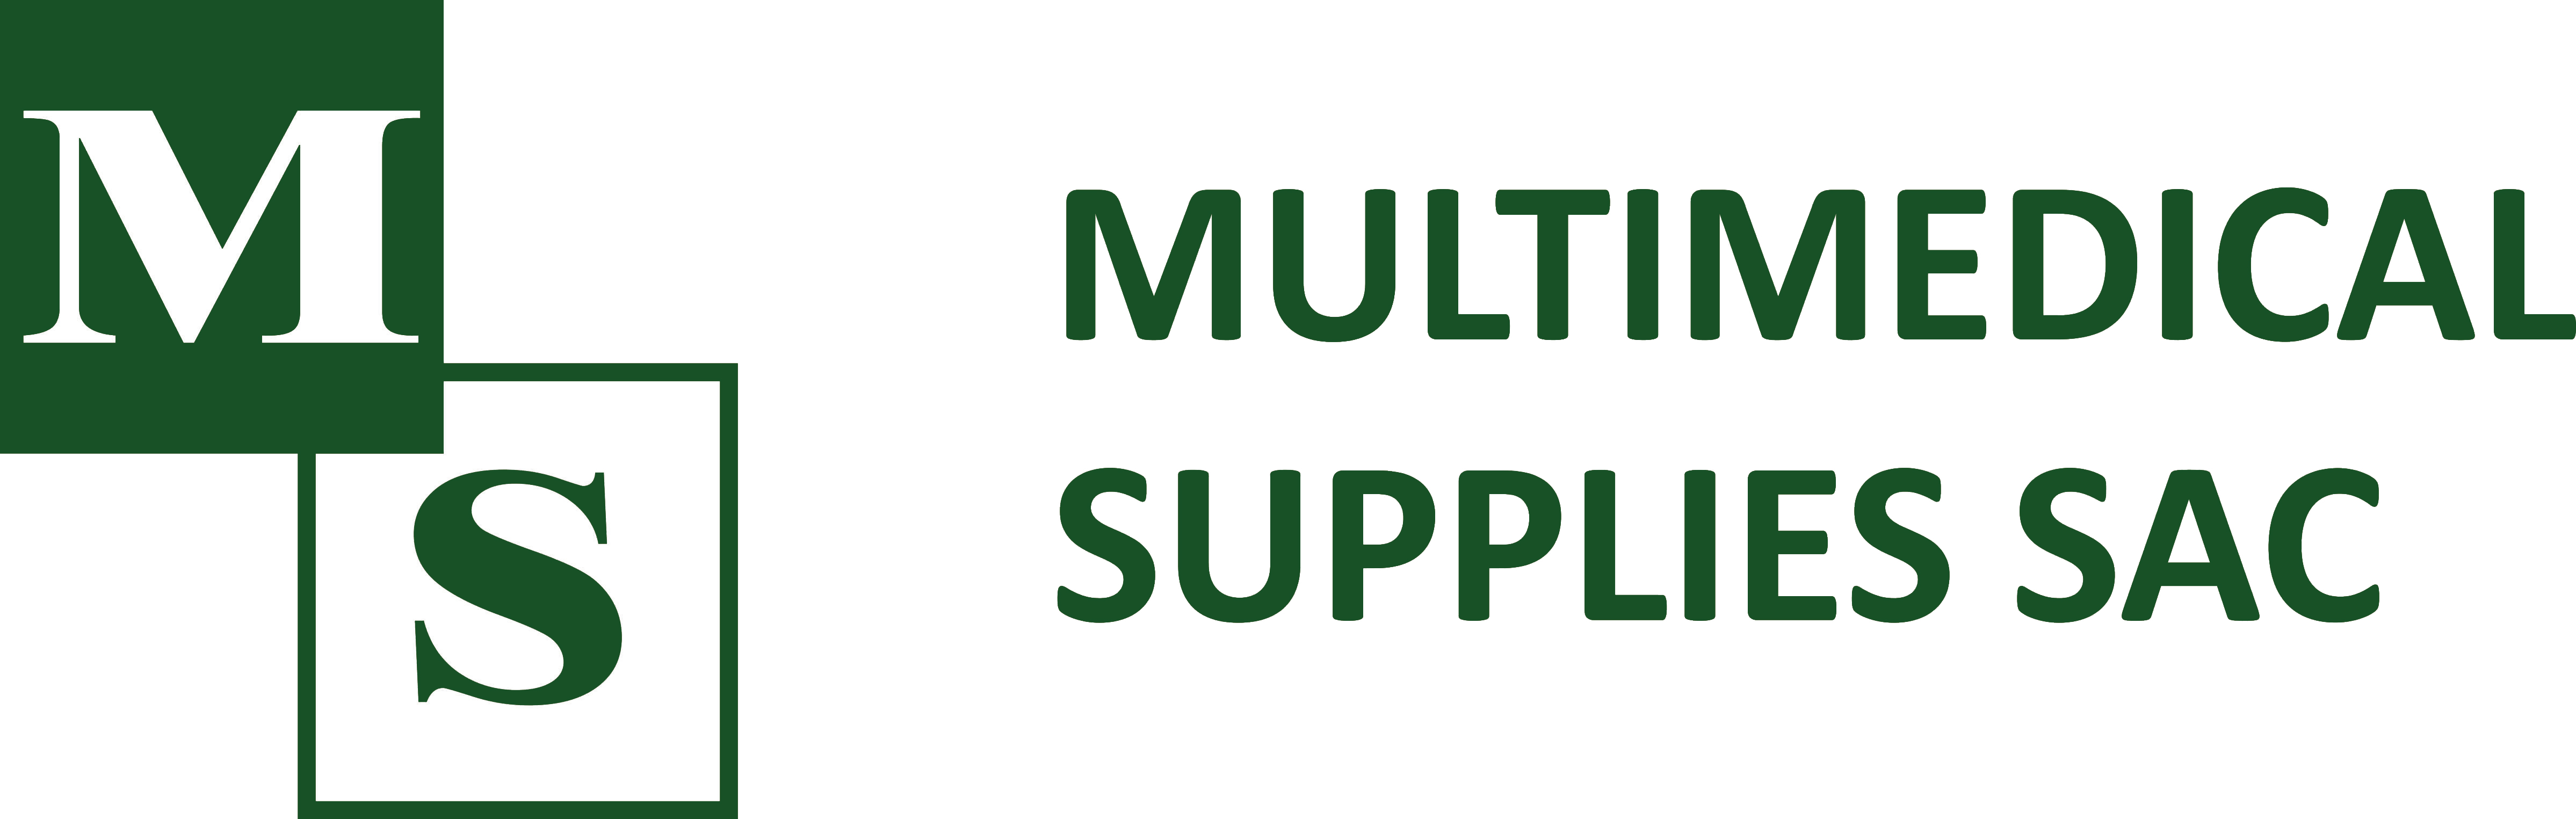 Multimedical Supplies SAC